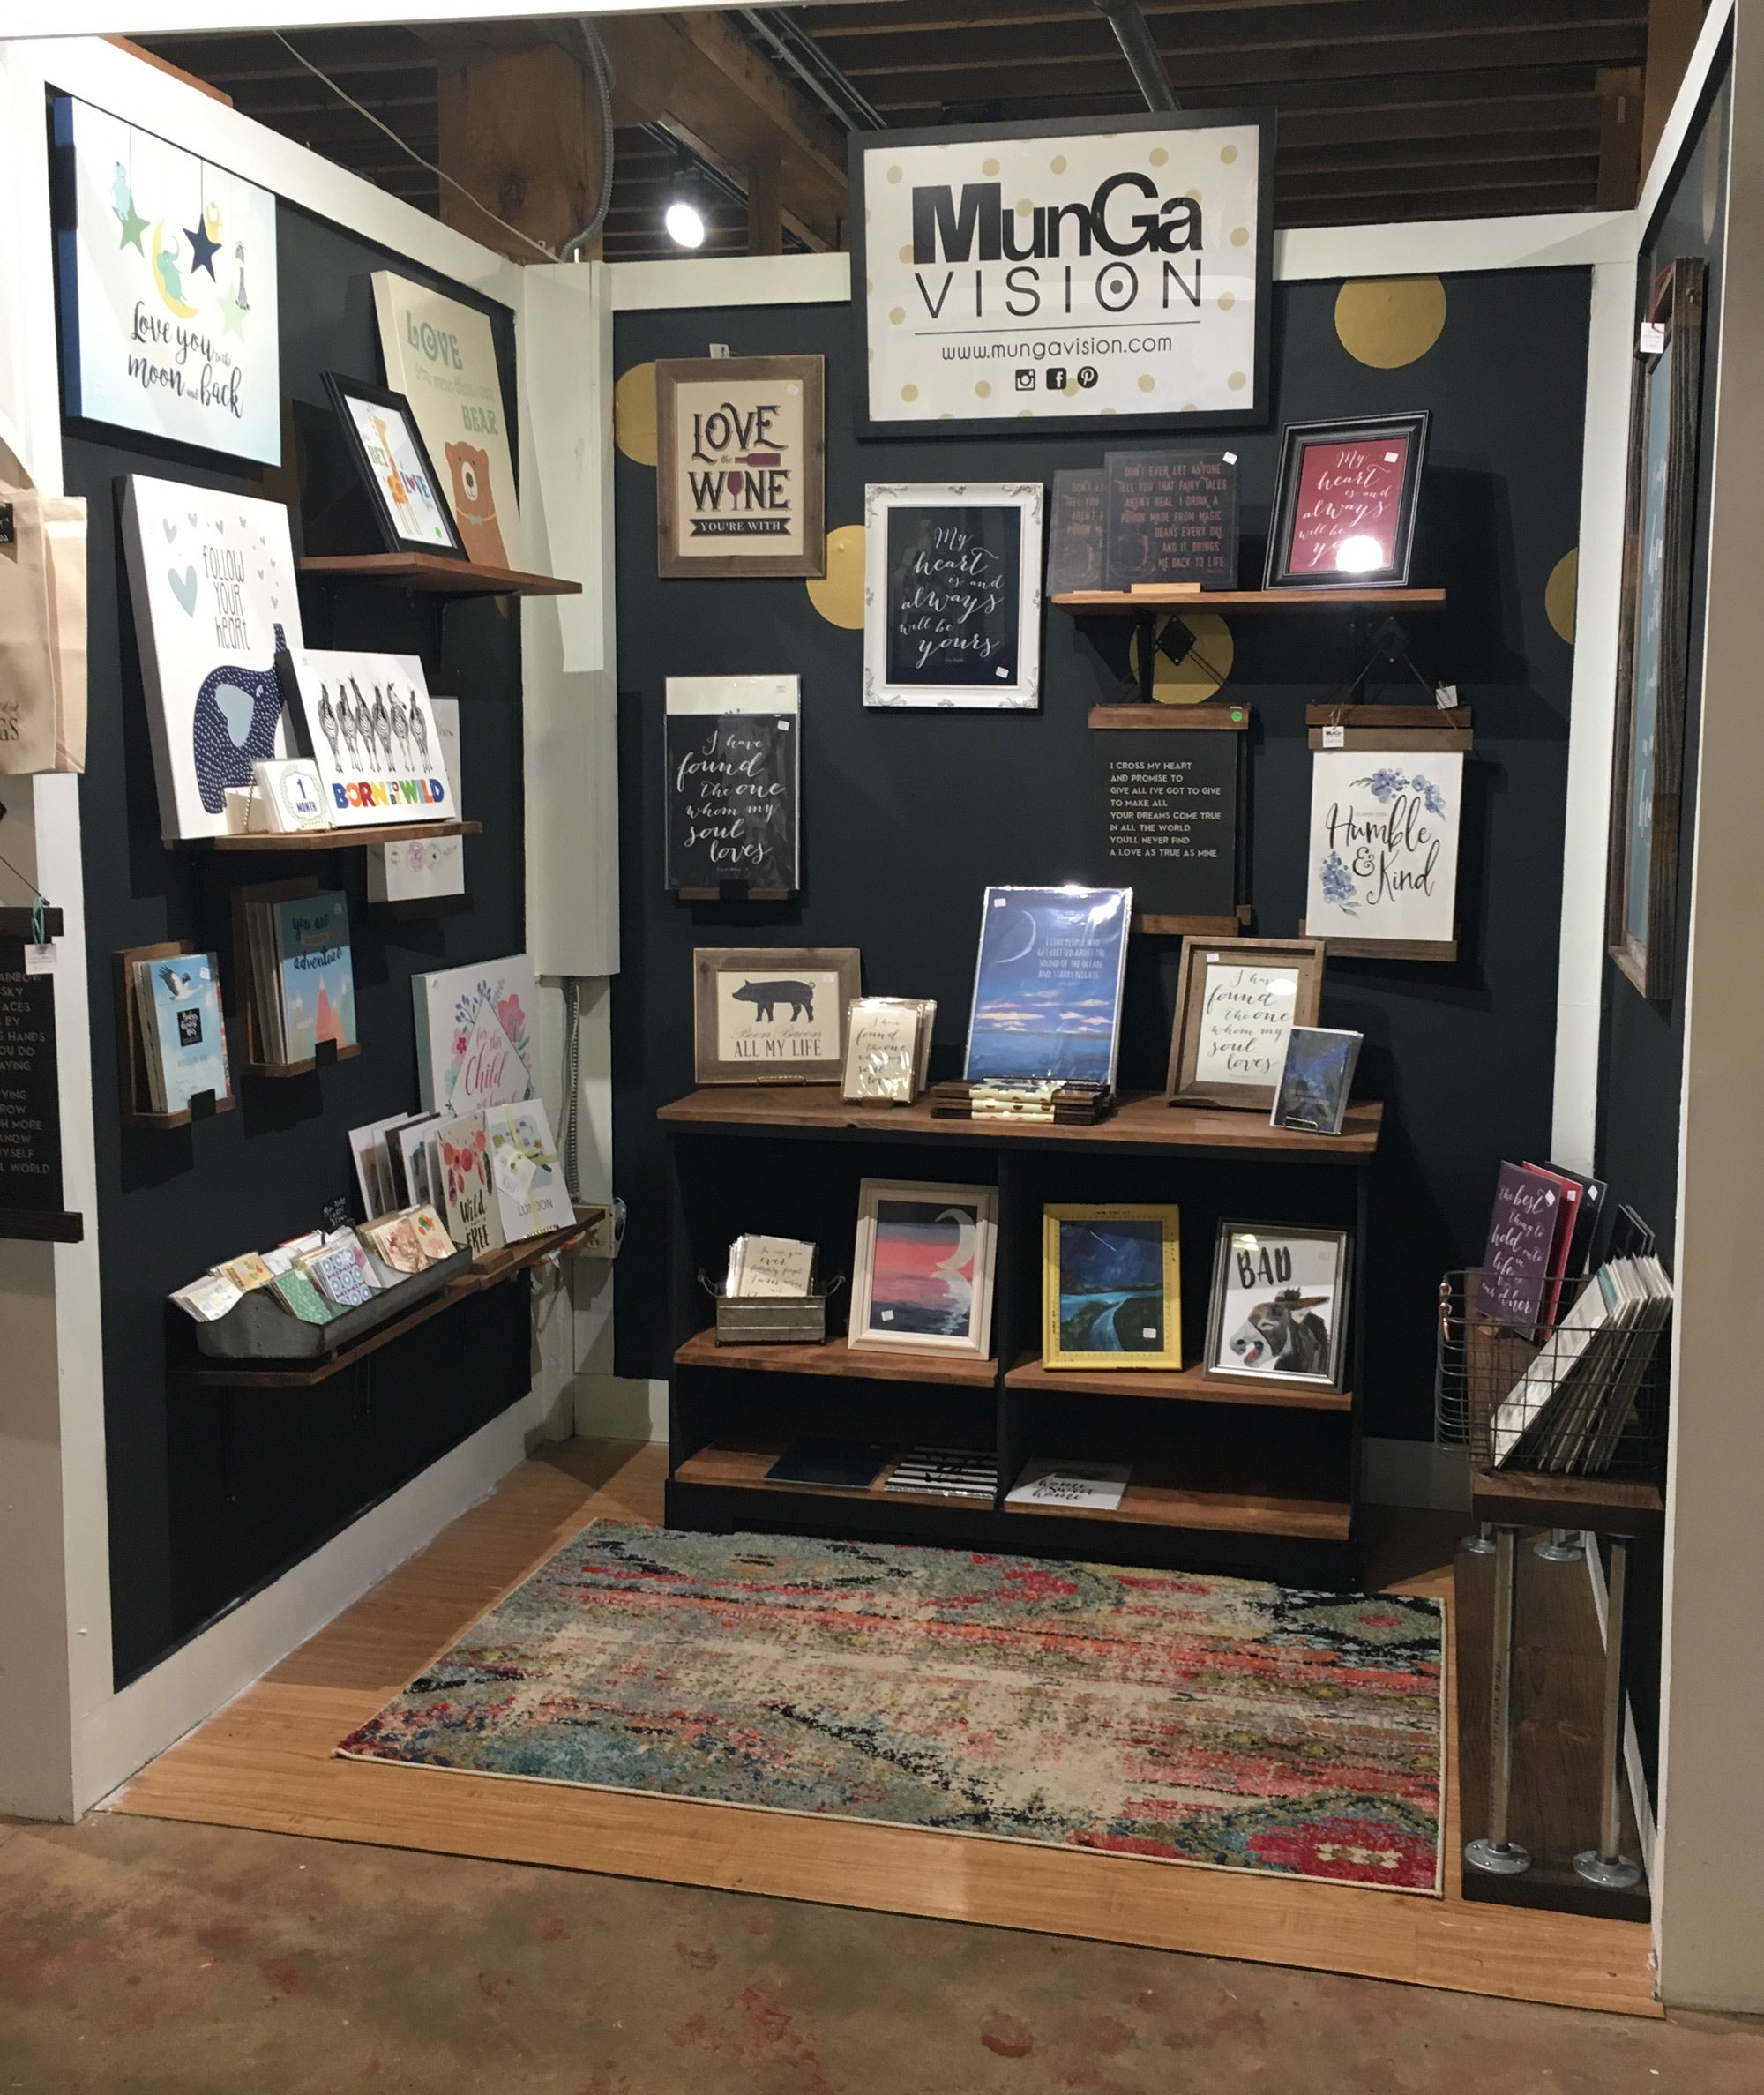 Munga Vision Boutique Space at The Cotton Company - Retail Warehouse in Wake Forest, NC